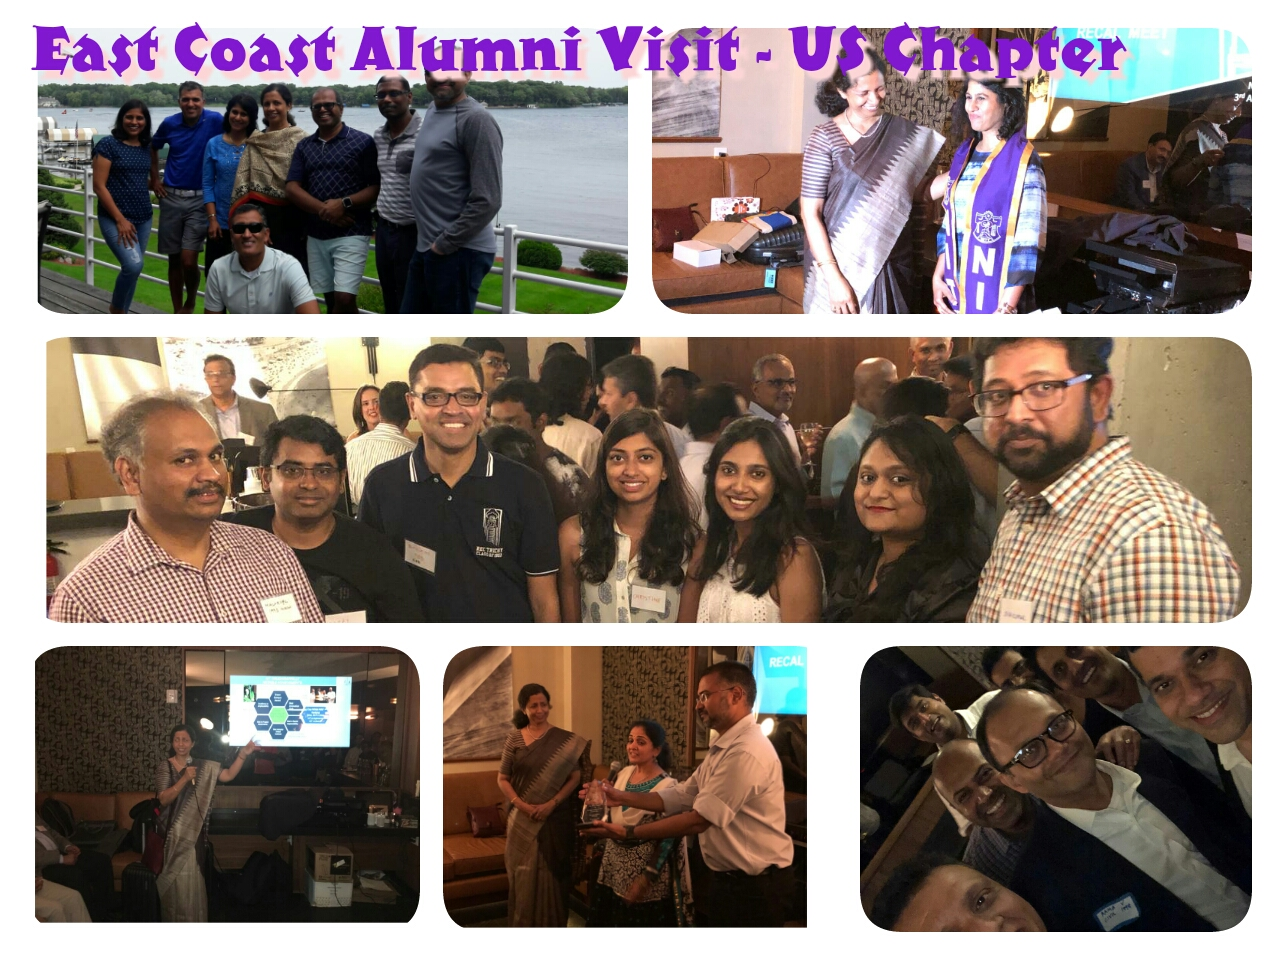 East Coast Alumni Visit